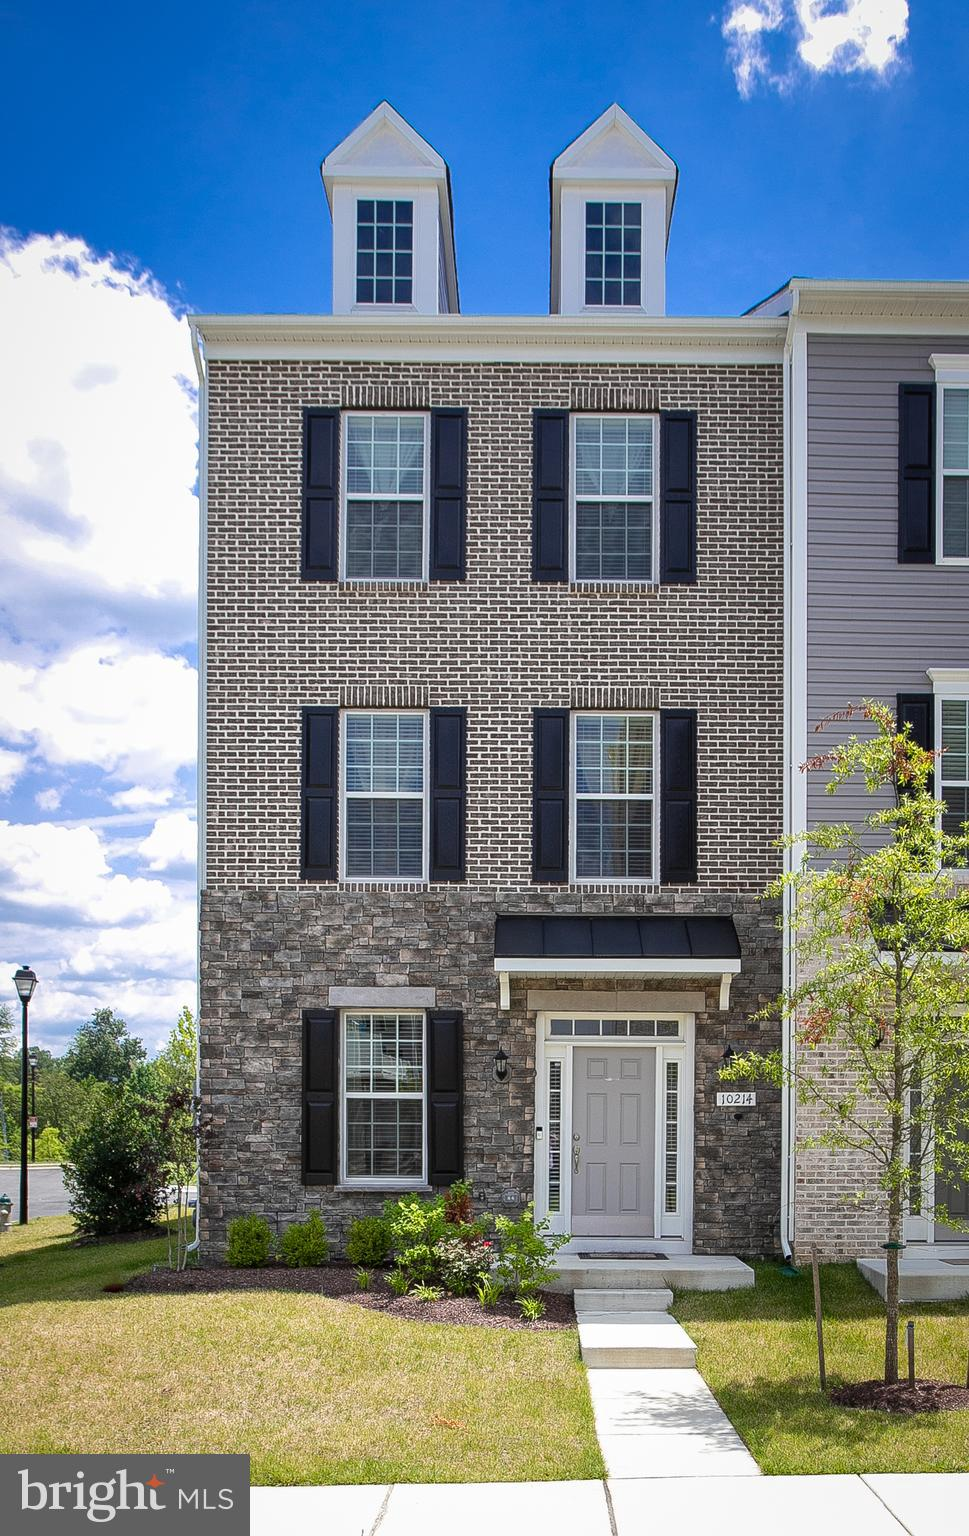 This stately end unit townhome features a stone and brick exterior, nicely landscaped and gently lived-in. The open floor plan extends from the living room to the kitchen, dining area, then the enclosed spacious deck.  There are beautiful hardwood floors throughout the main level, kitchen with tall cabinets, and loads of granite countertop space.  The center island is wide and has space for additional storage and seating. The upper level offers 3 generous bedrooms; the primary bedroom bath has soaking tub, separate shower, double sinks, and walk-in closet.  The laundry is on the upper level as well.  The lower level has a family room, full bath, and entry to the garage. The 2 car garage is completely finished, the concrete floor has an epoxy coating, and is painted for durability.  There is also space for two cars to park side by side outside of the garage.